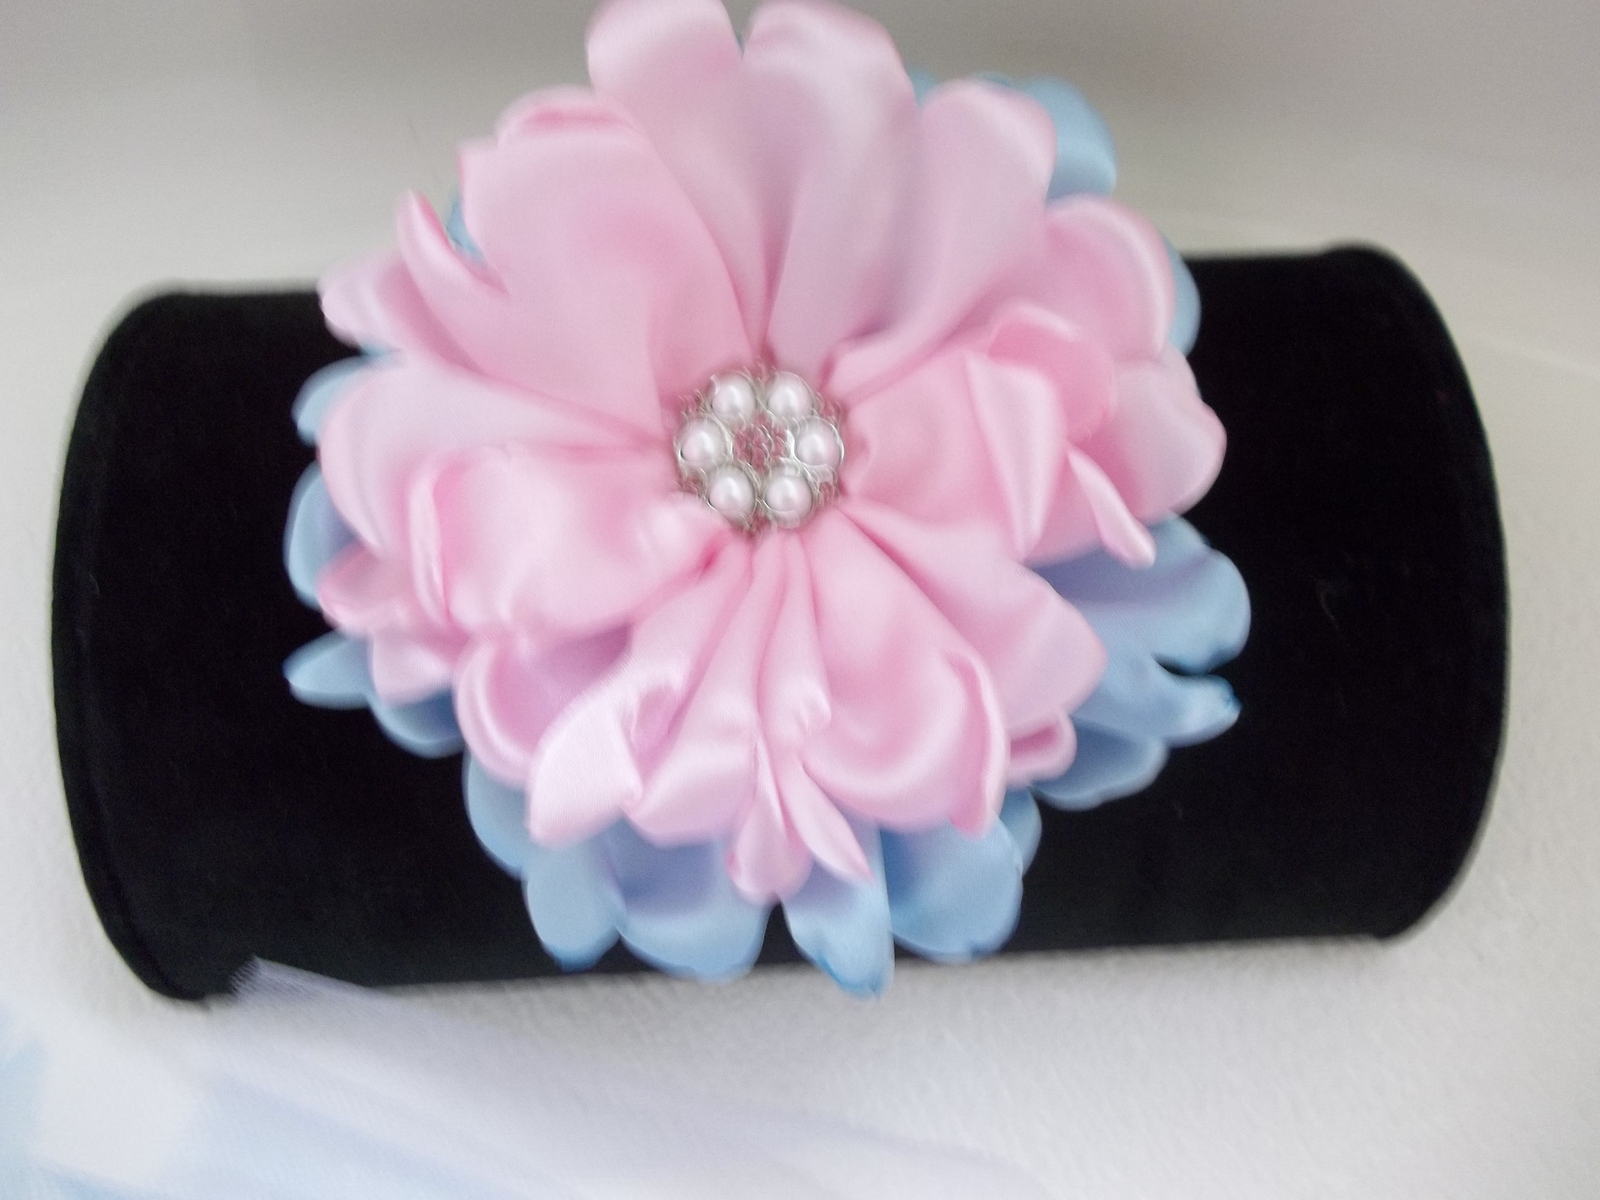 BABY GIRL COTTON CANDY (PINK & BLUE) TUTU PHOTO PROP DRESS WITH HEADBAND